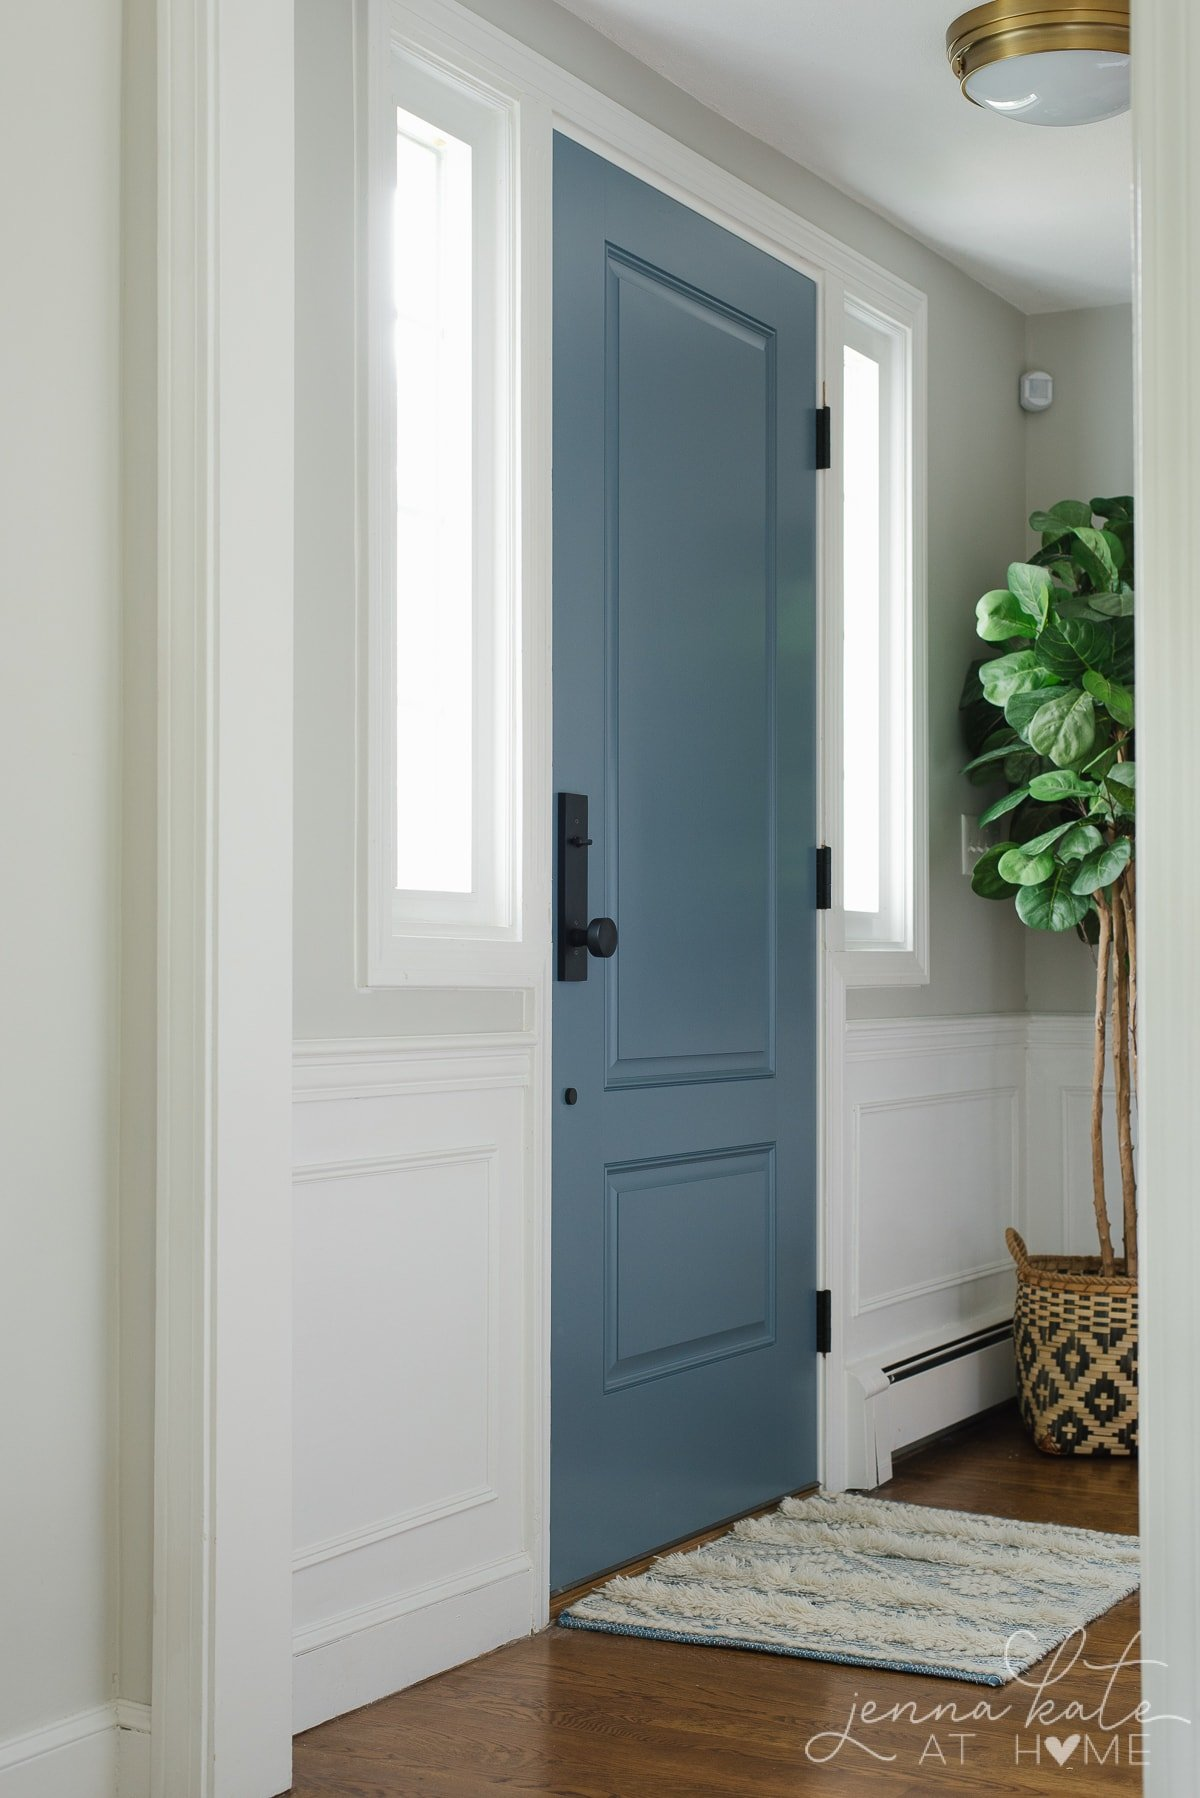 Interior trim, baseboards and wainscoting painted with Sherwin Williams Extra White